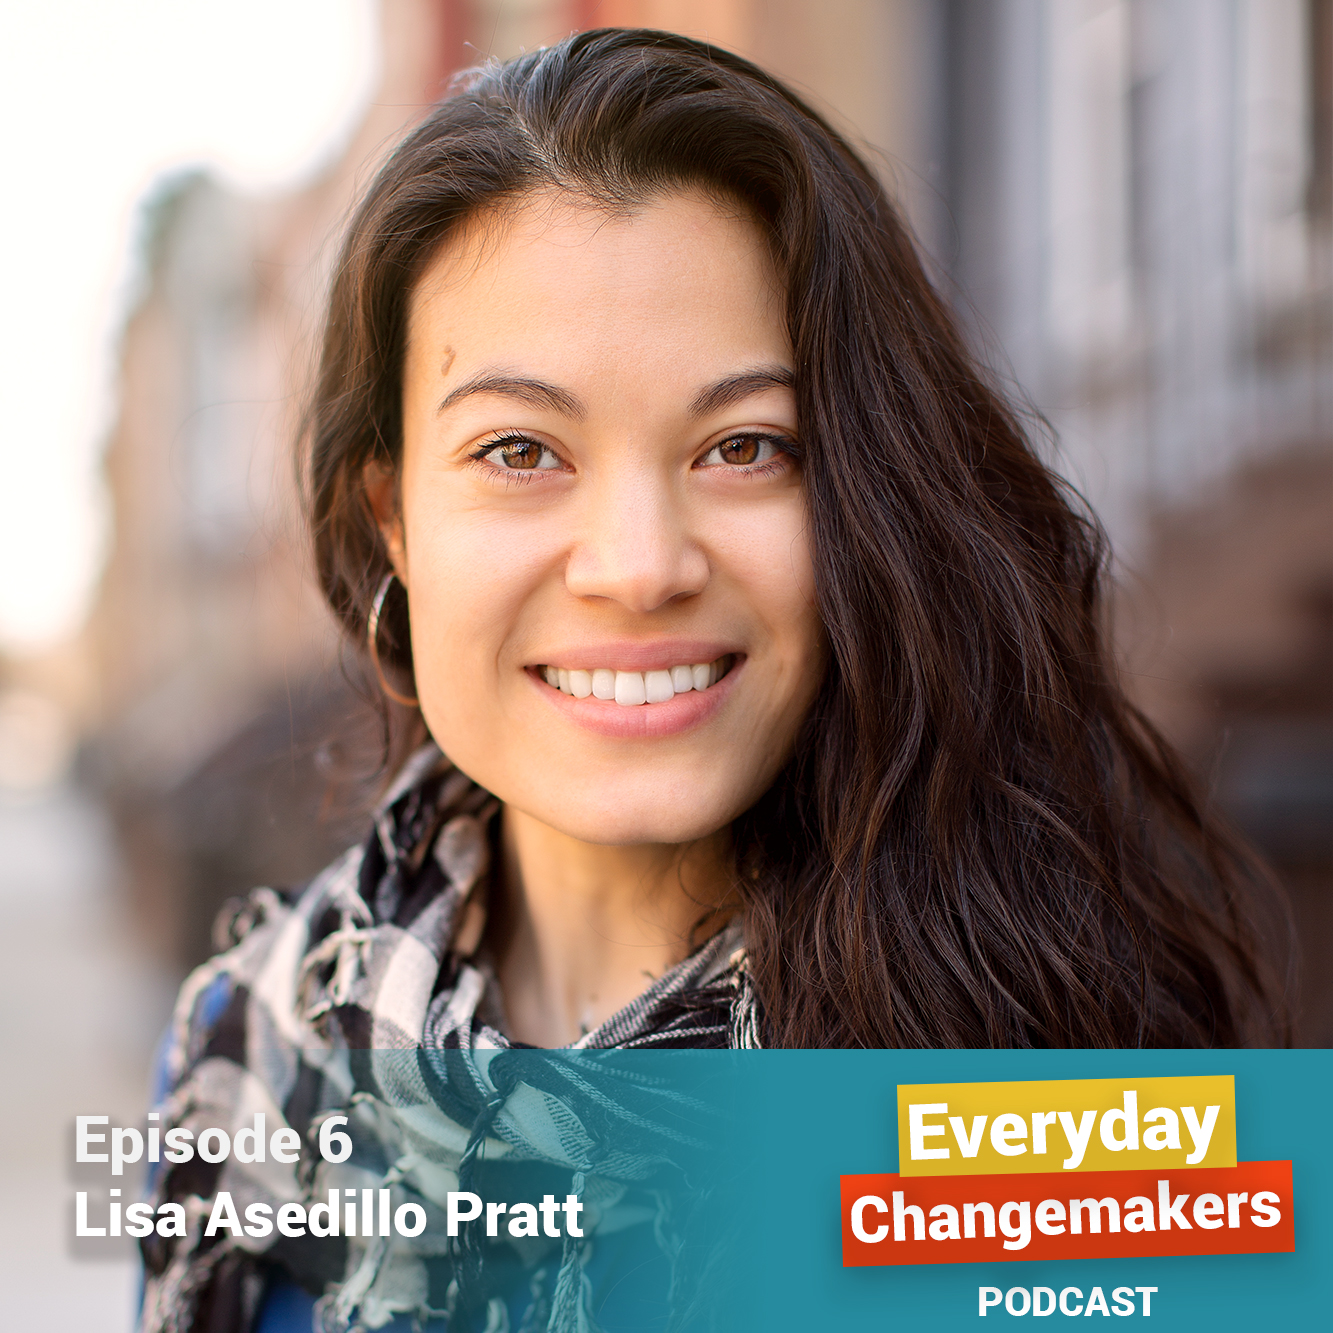 On Searching For Signs and Imagining New Worlds, Together - Lisa Asedillo Pratt is one of the co-founders and pastors at New Day Church in the Bronx, New York.Lisa grew up wanting to belong to